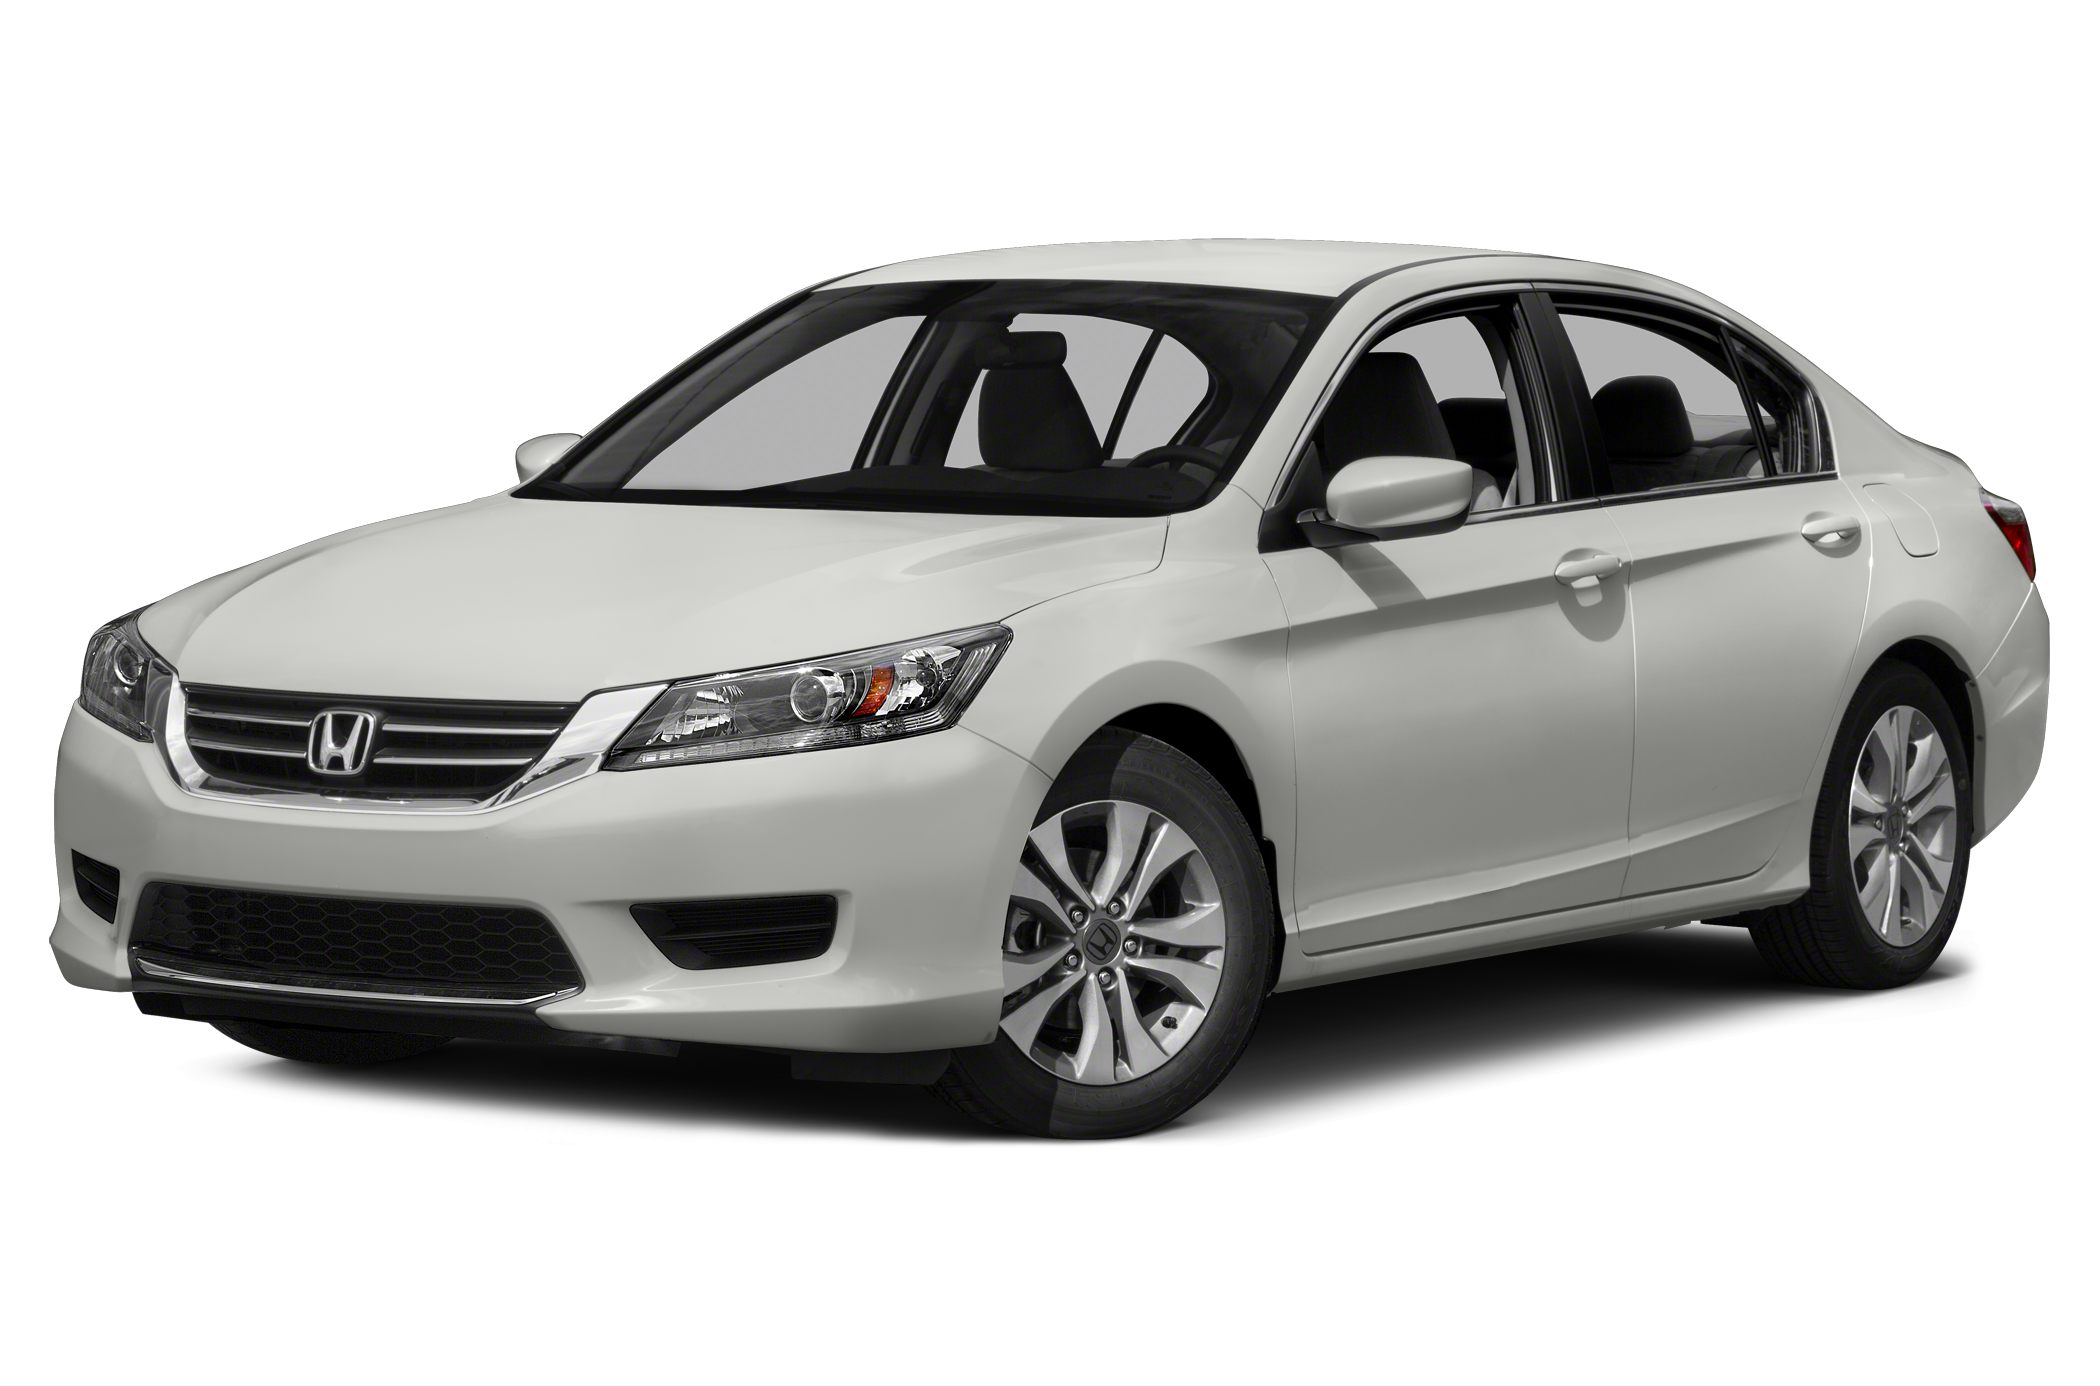 2015 Honda Accord LX Sedan for sale in Frisco for $23,725 with 25 miles.